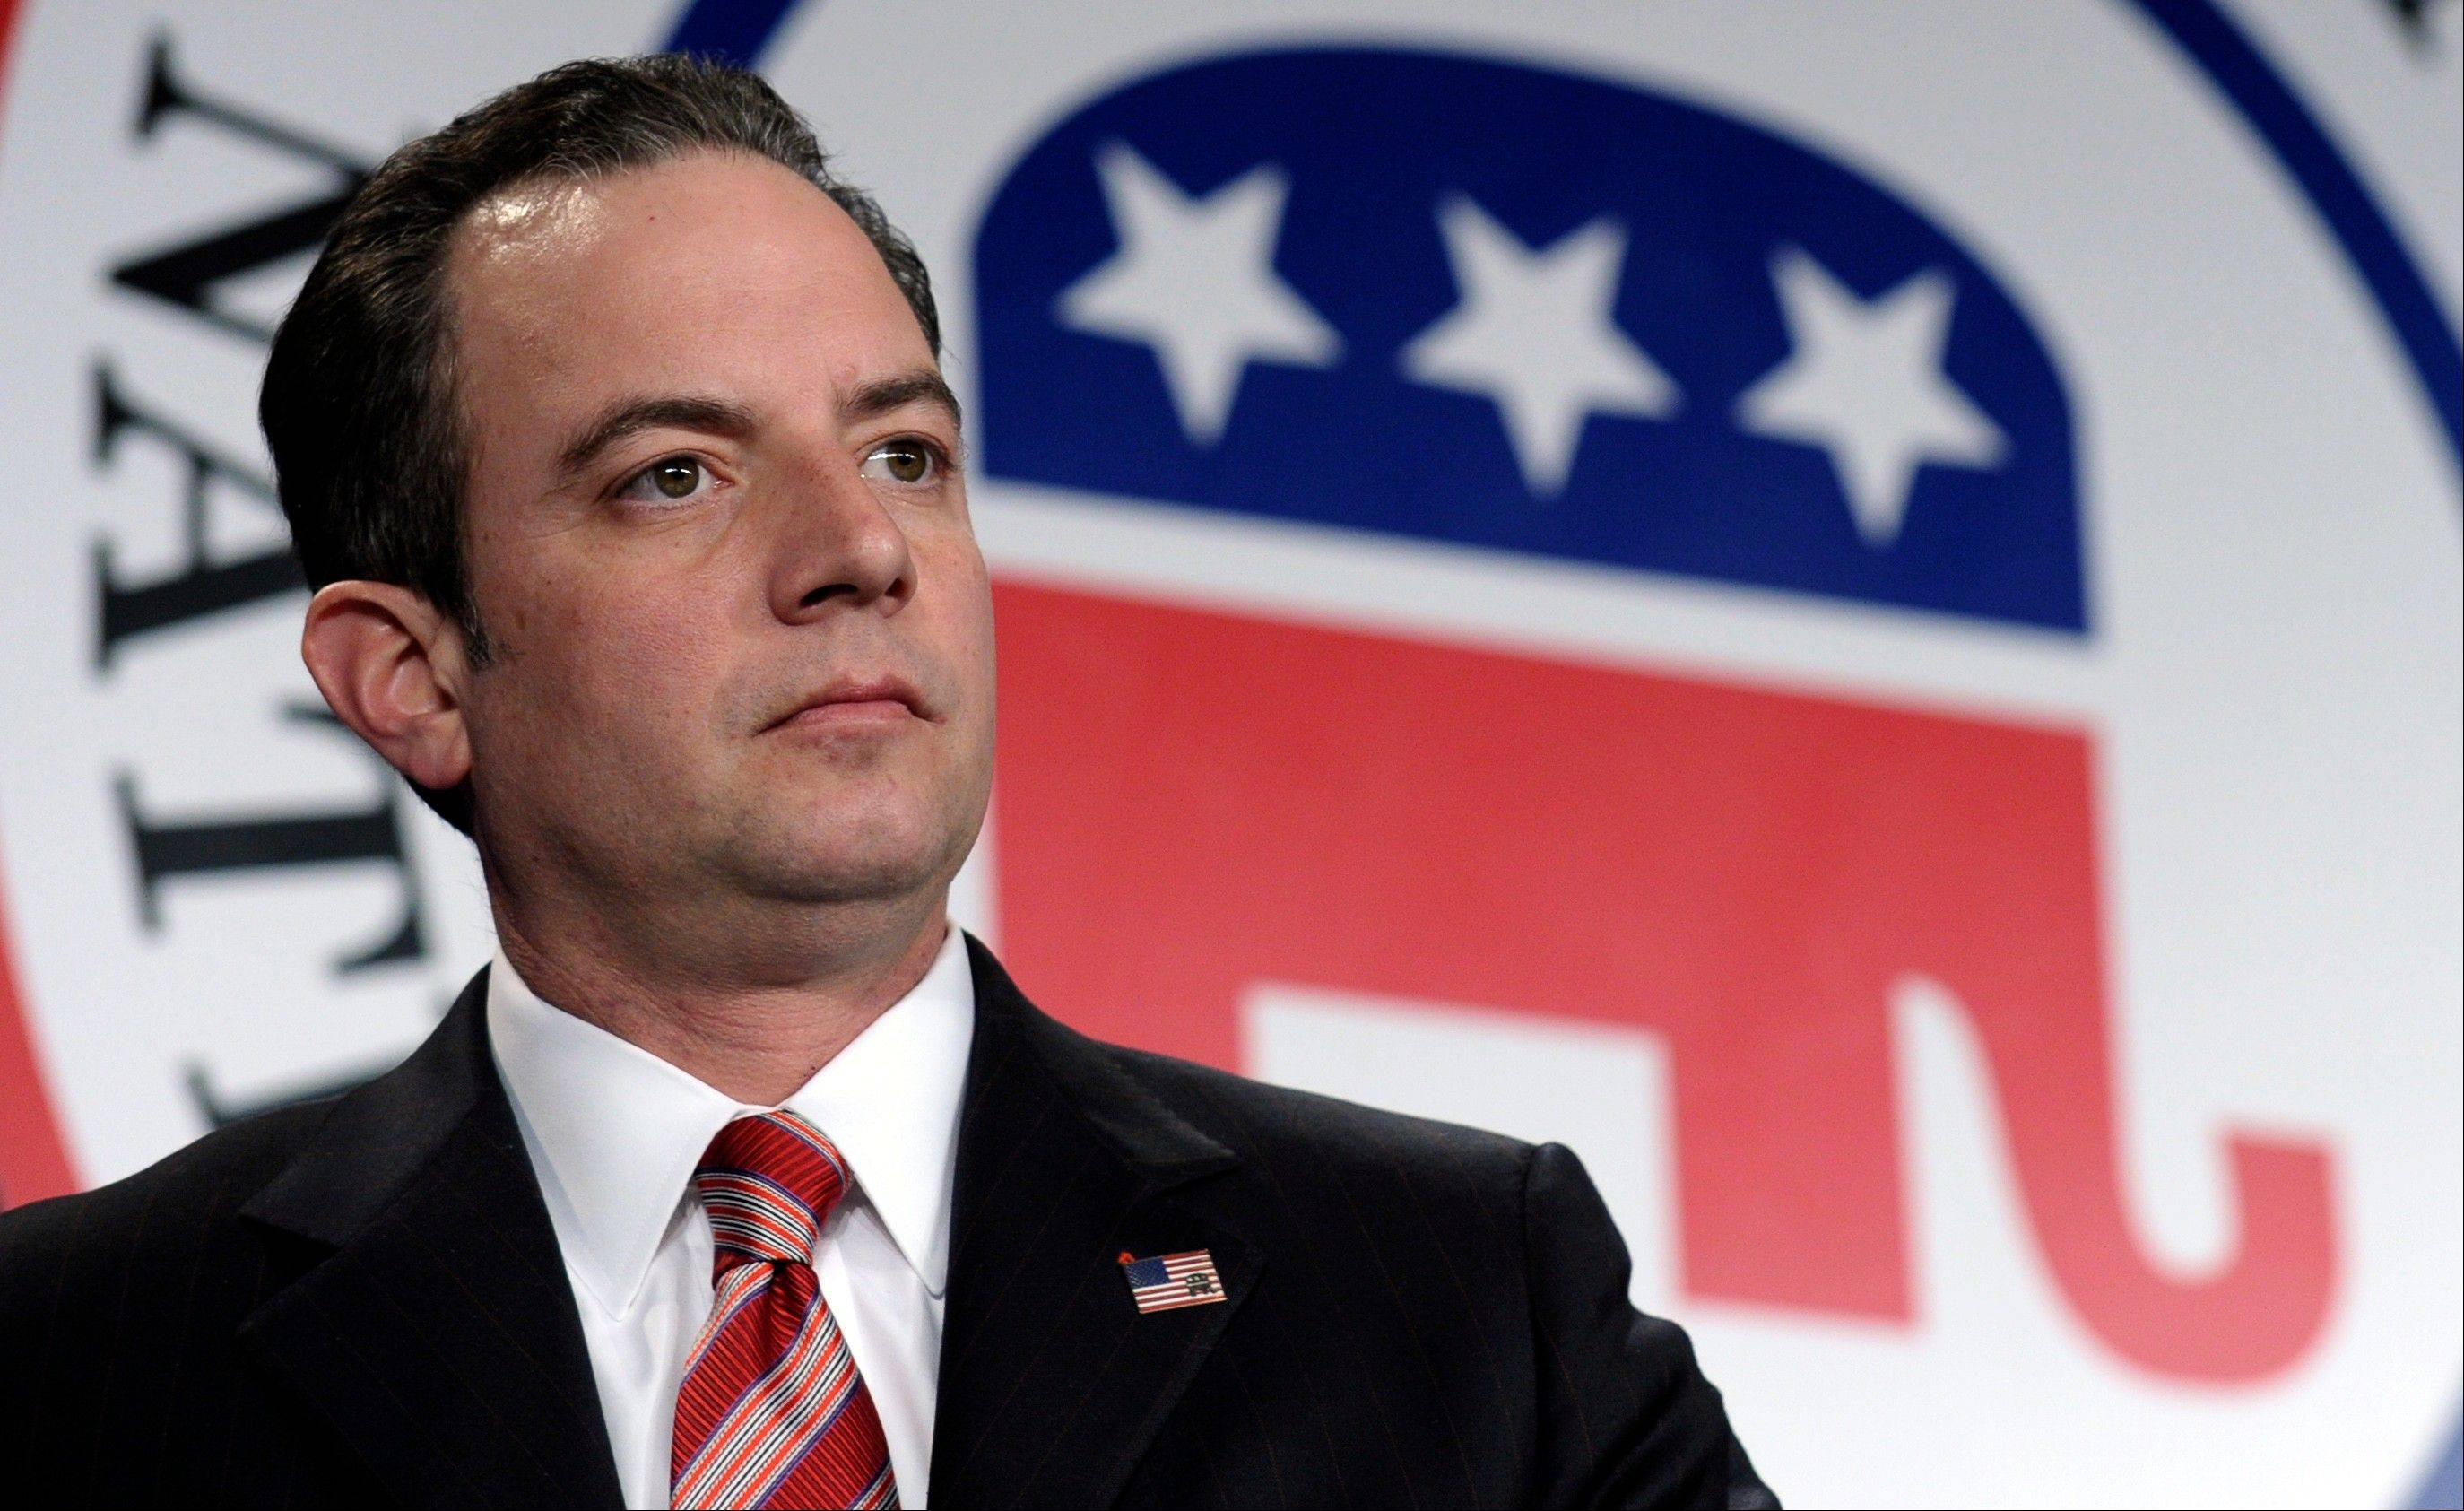 Republican National Committee chairman Reince Priebus presides Friday over the winter meeting in Washington.